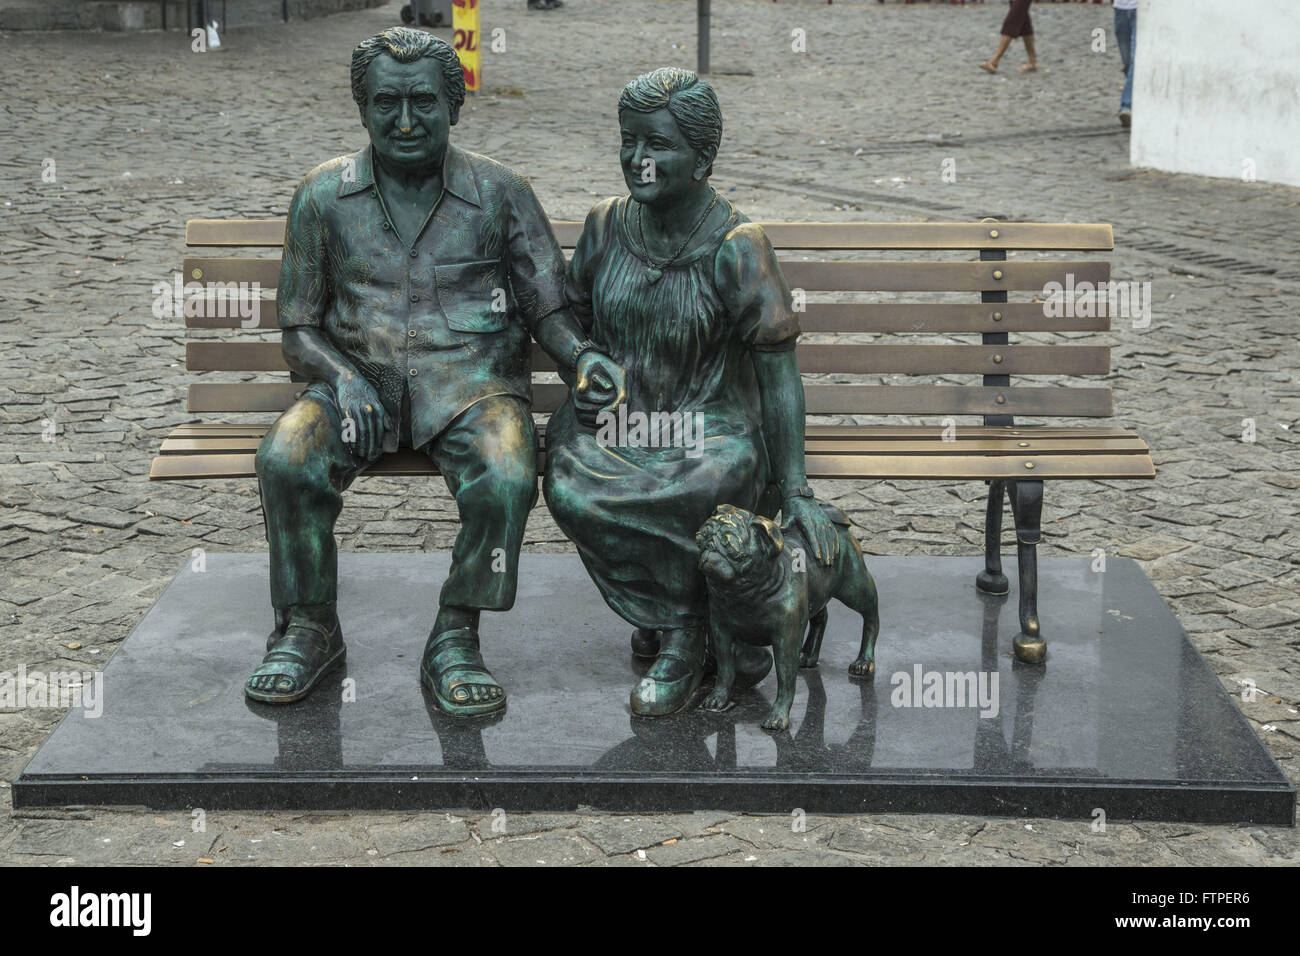 Sculpture of a couple of writers Jorge Amado and Zelia Gattai - work Tatti Moreno 2012 - Stock Image